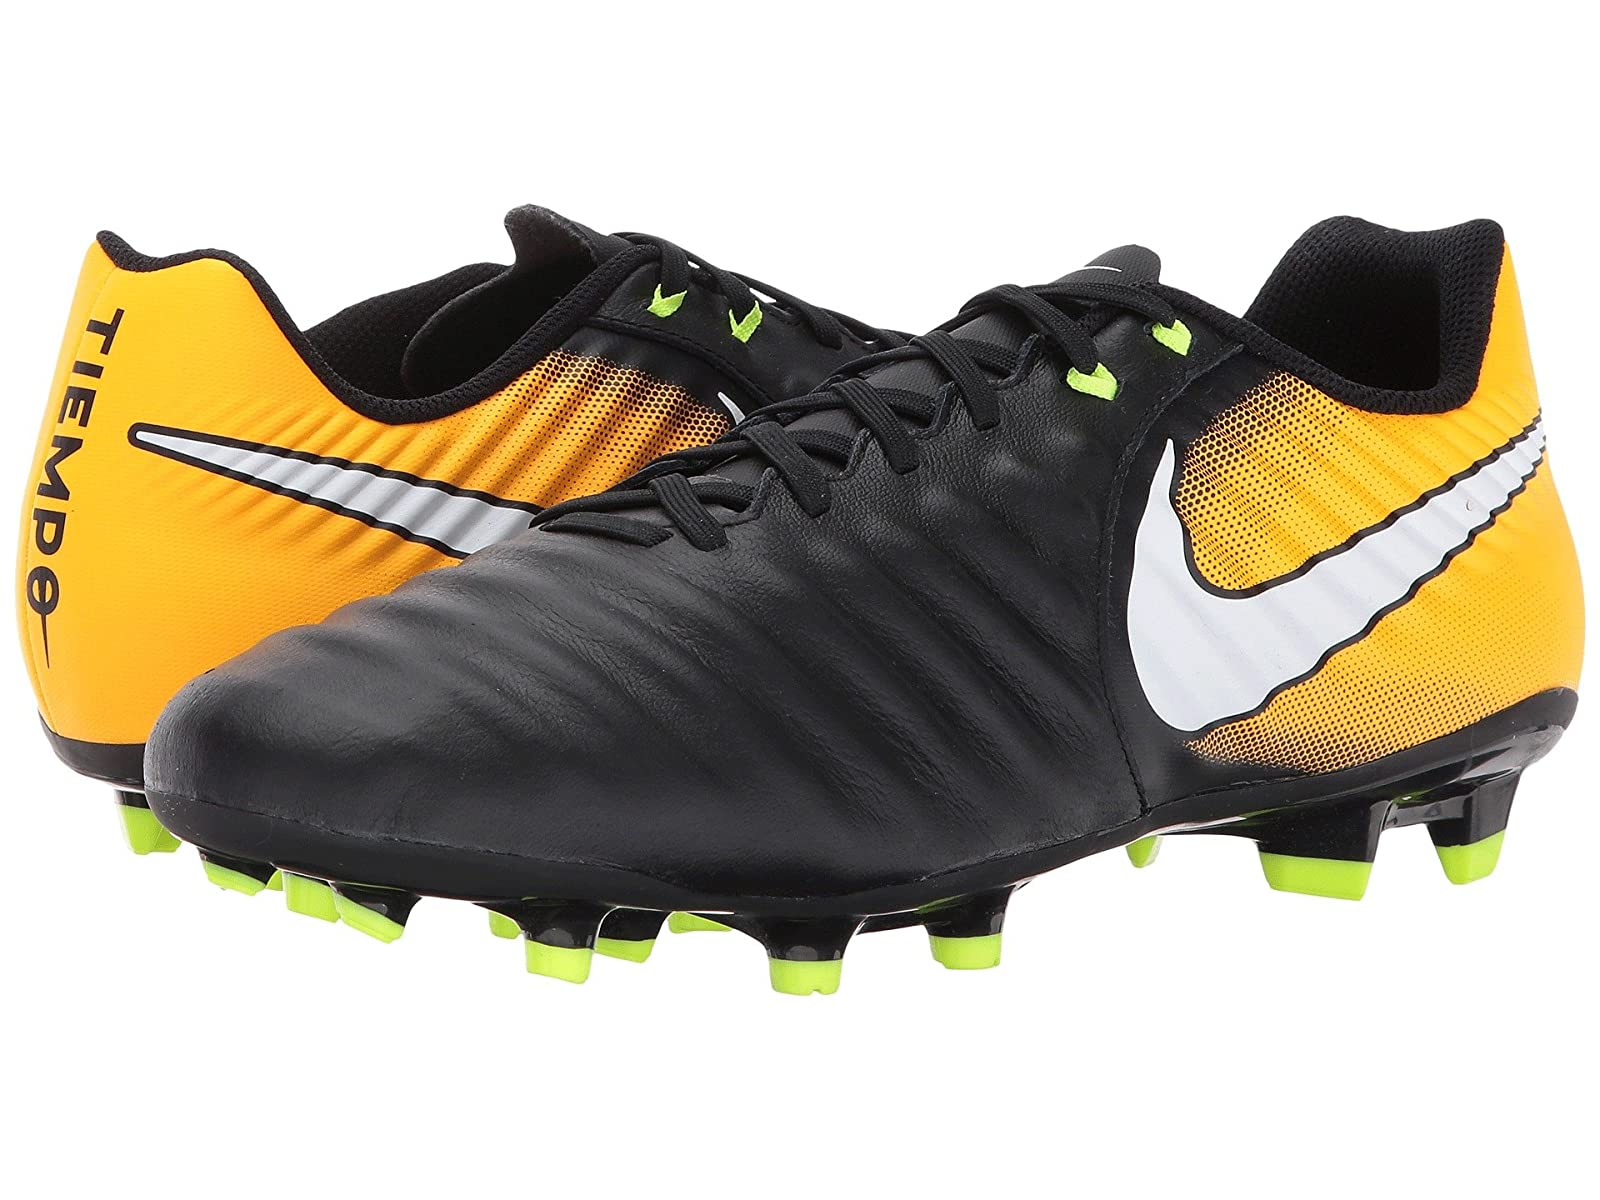 Nike Tiempo Ligera IV FGCheap and distinctive eye-catching shoes